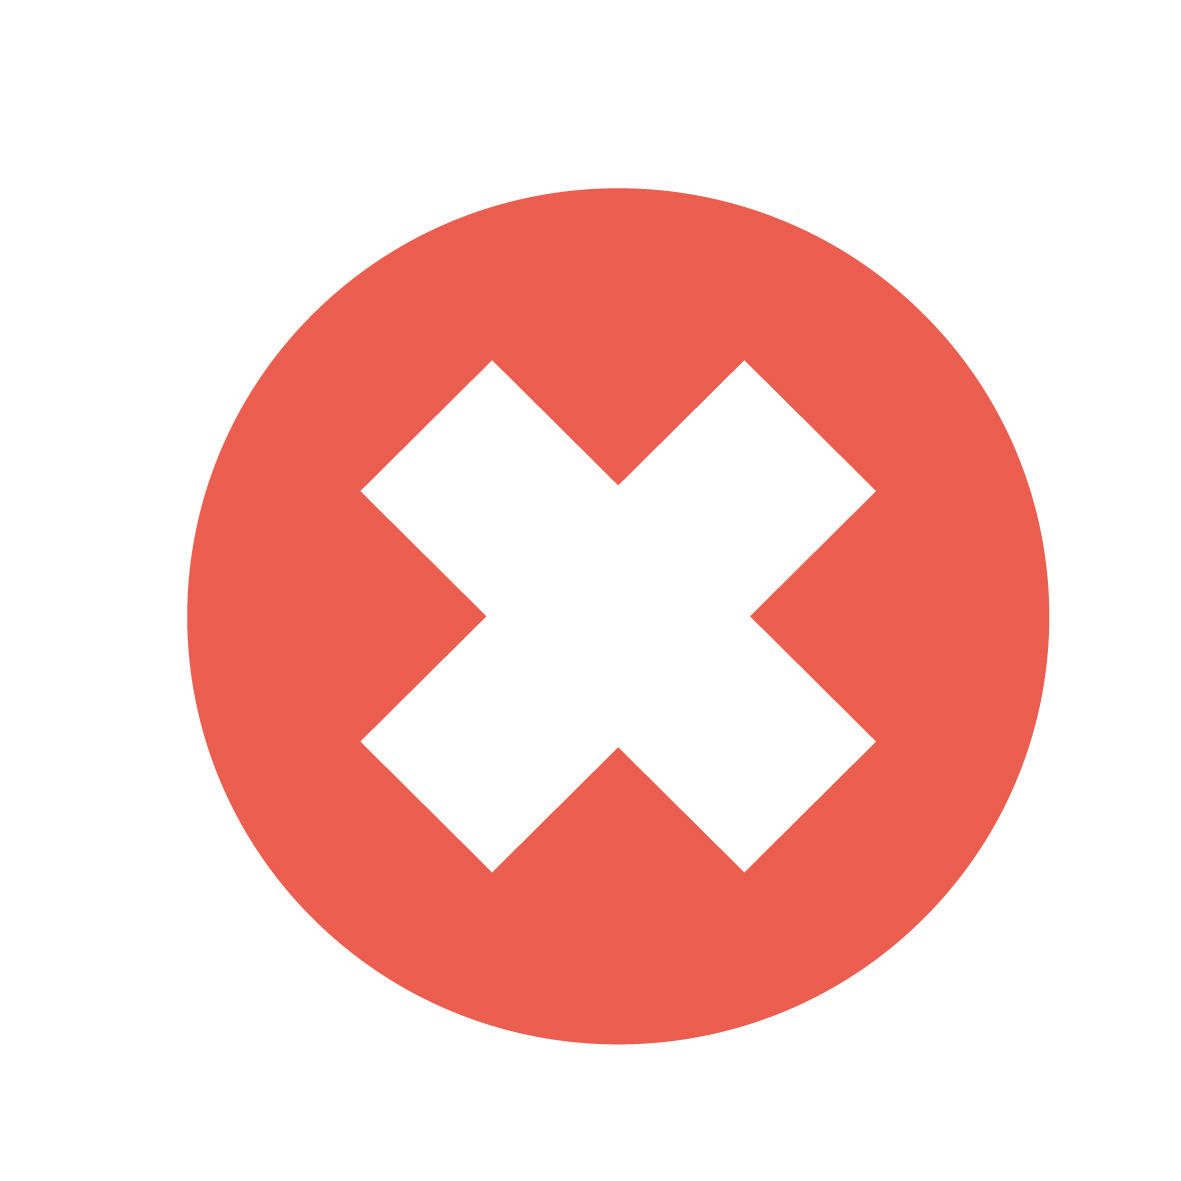 Icon - Cross (x)